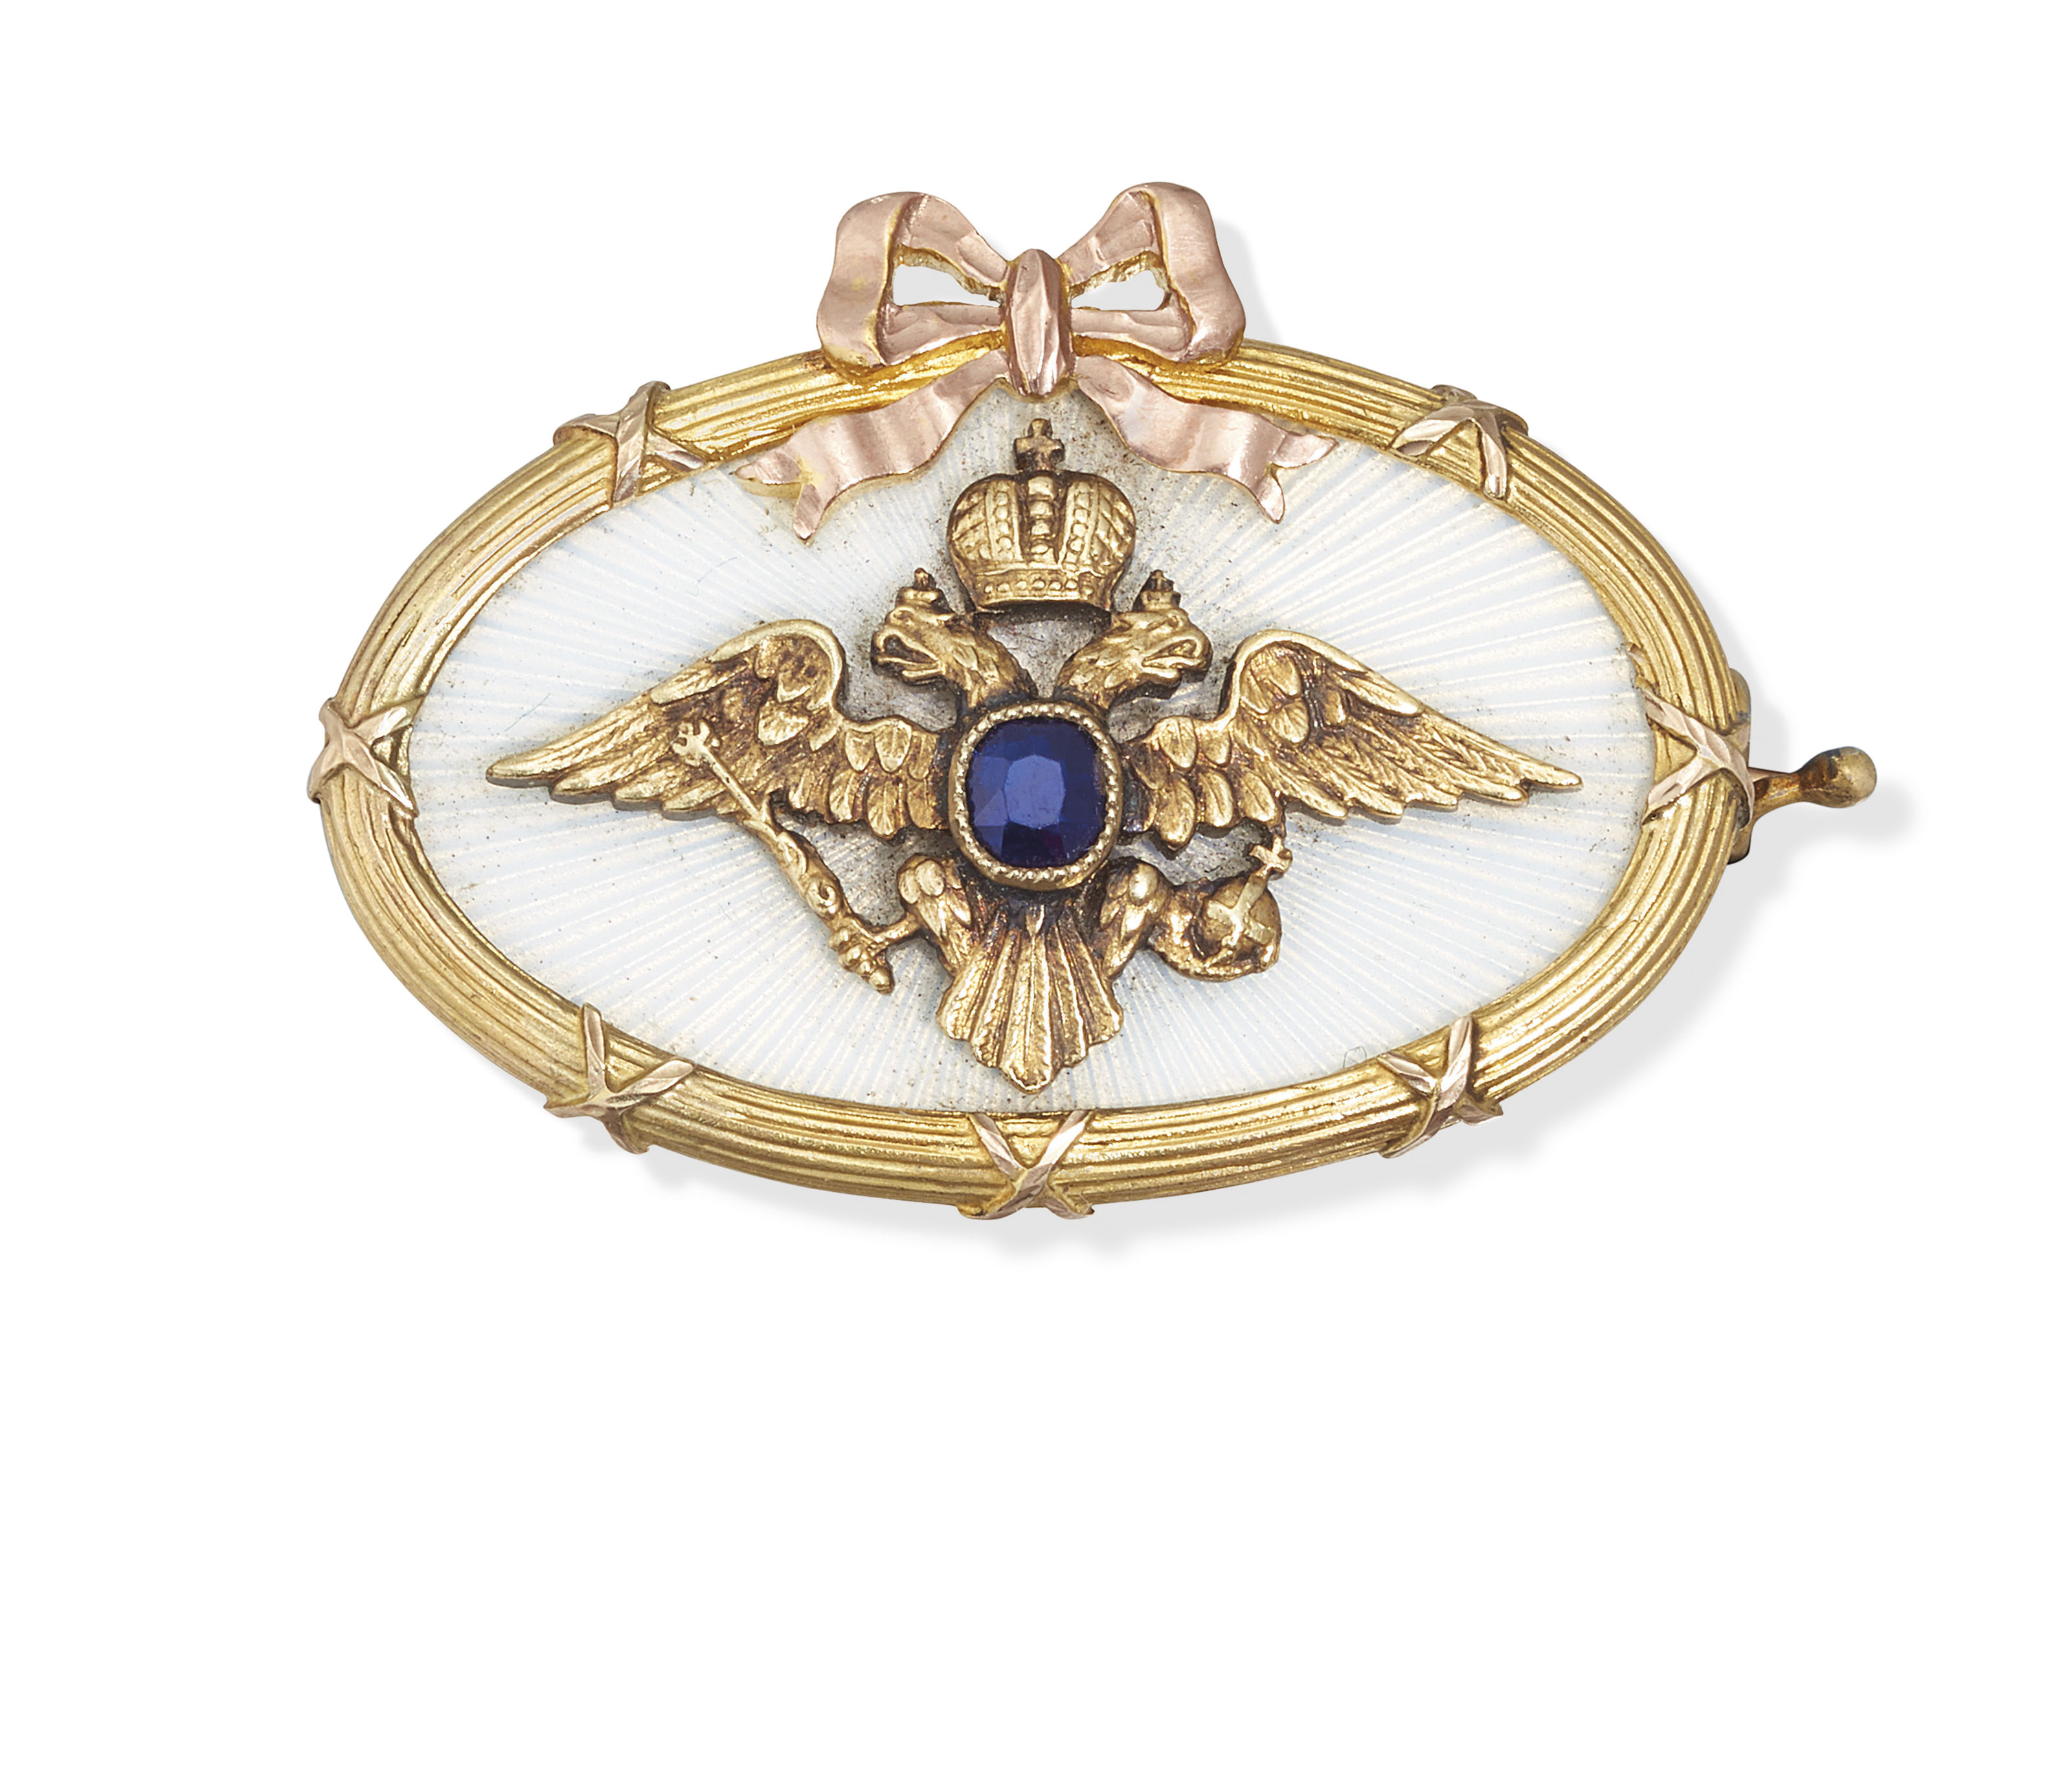 A JEWELLED AND GUILLOCHÉ ENAME